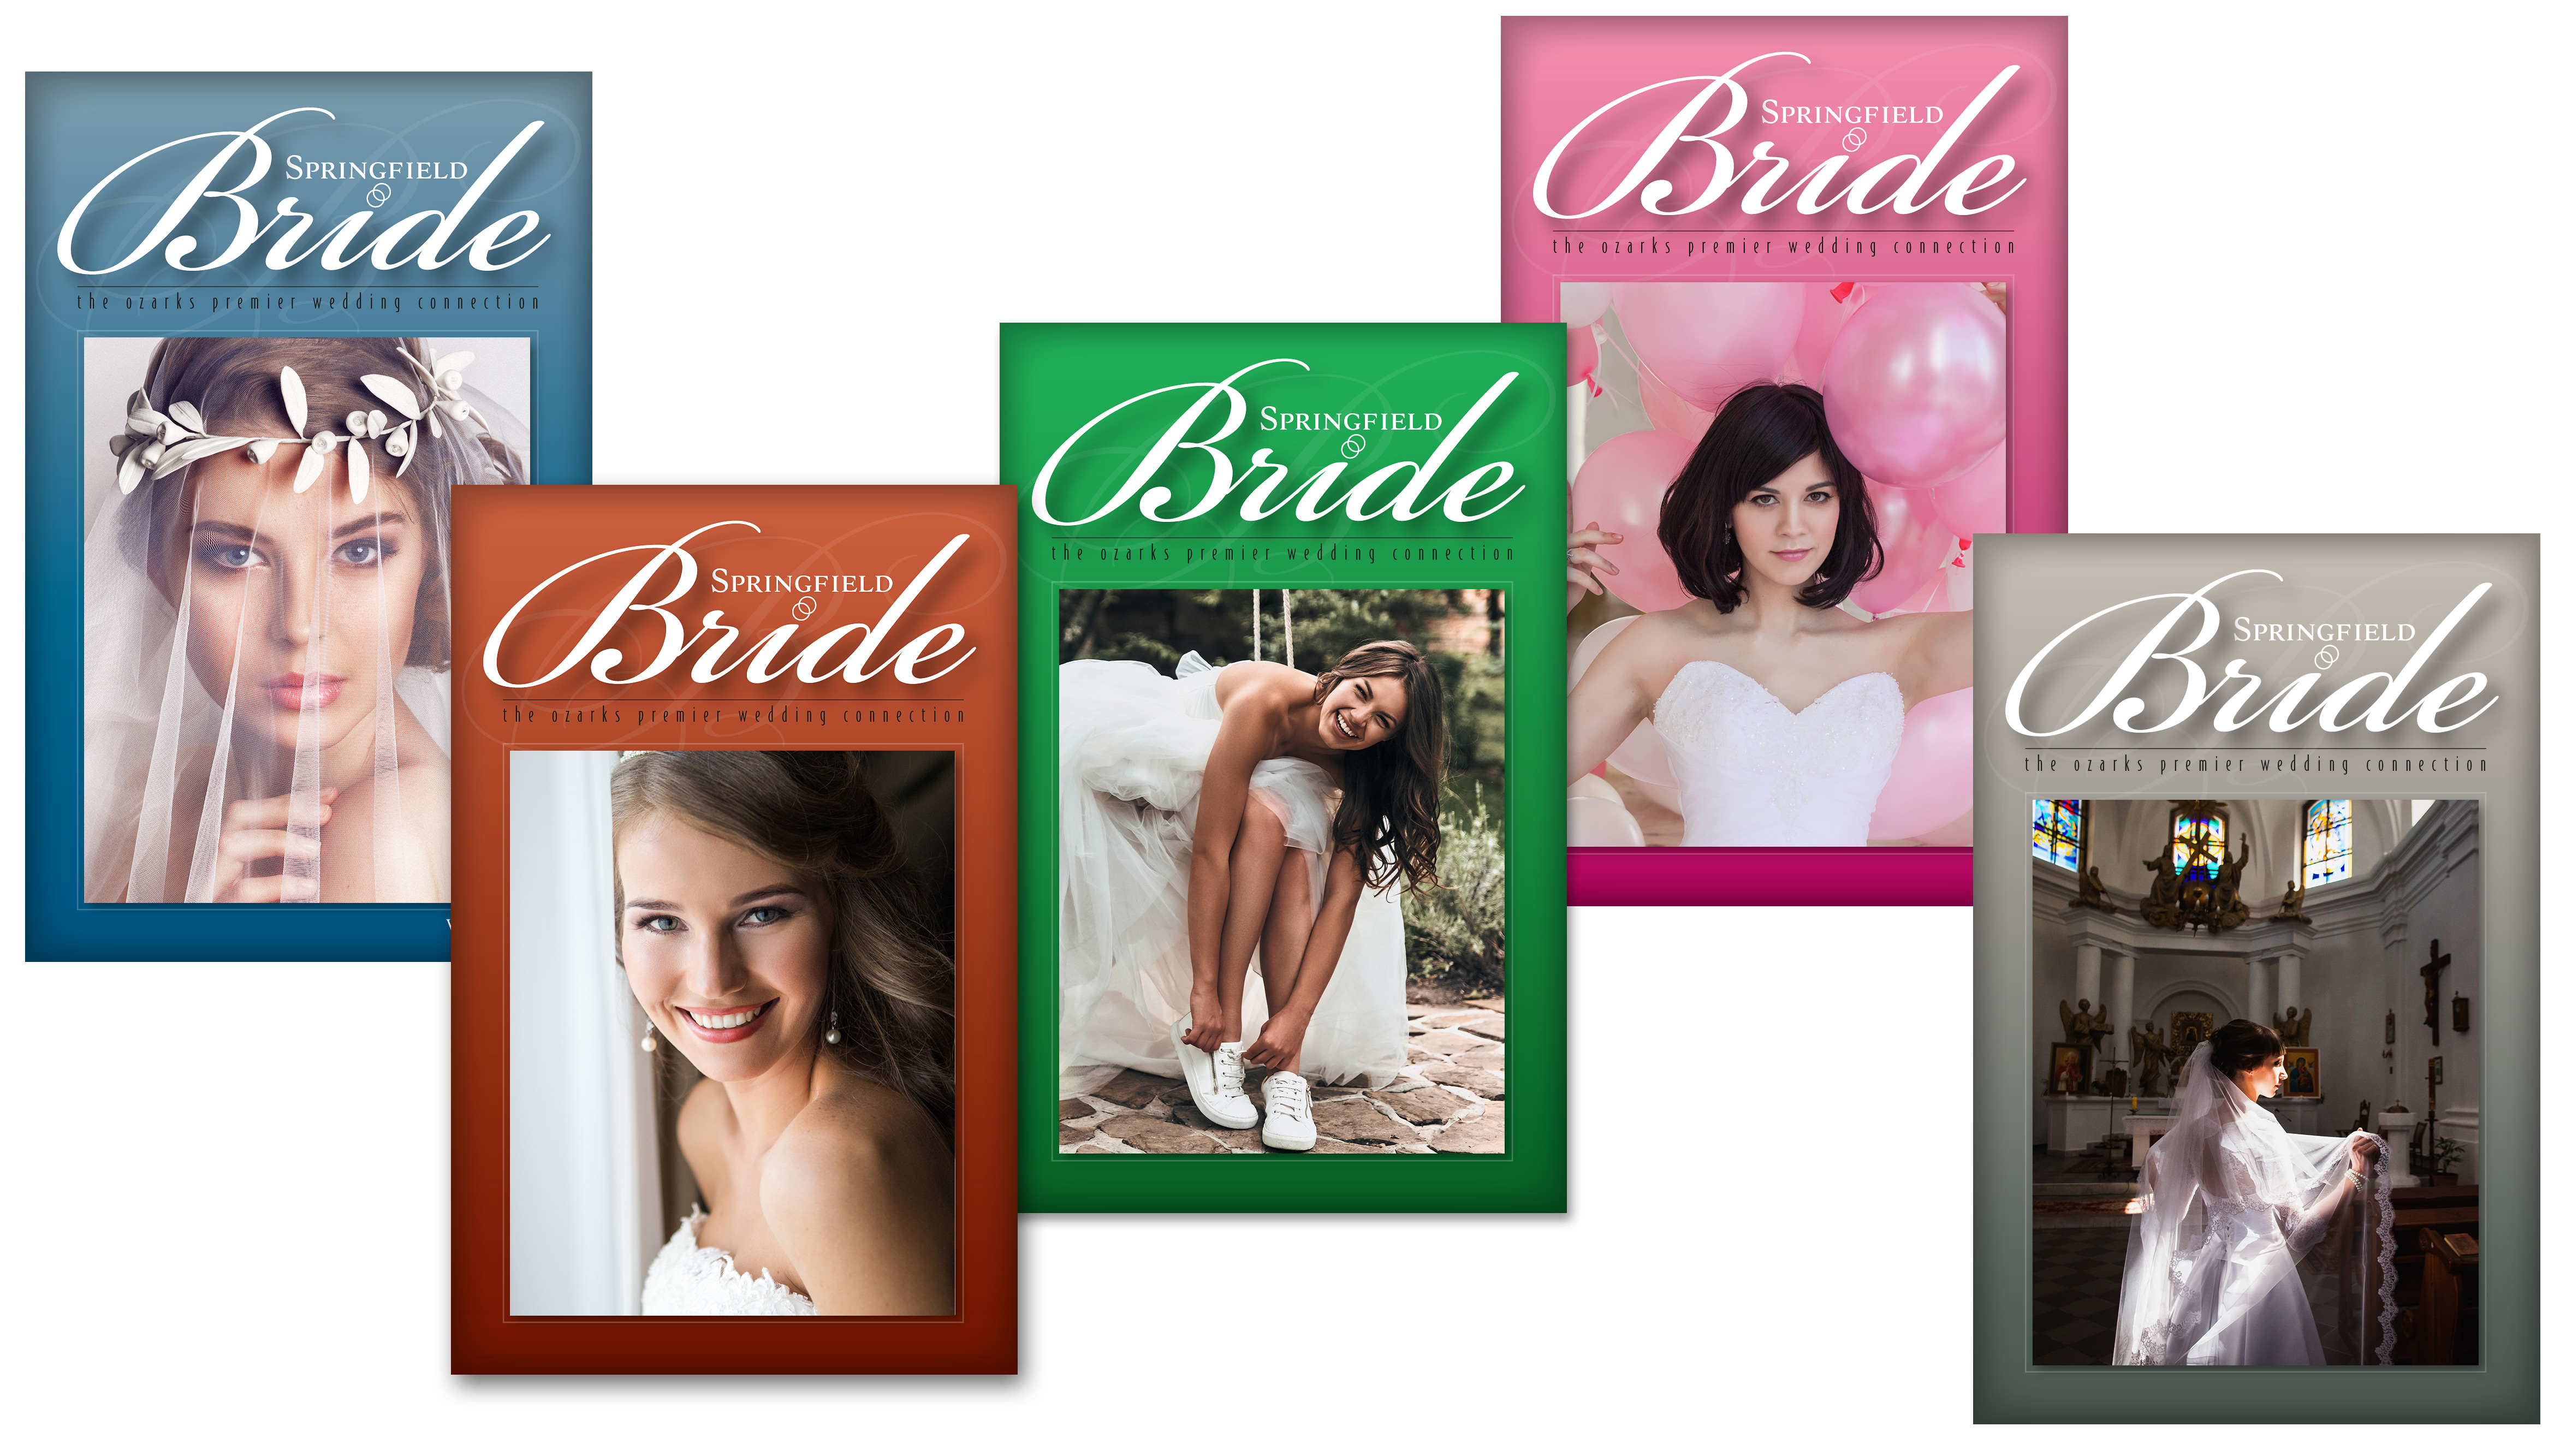 Jeff Kern design - Springfield Bride Booklet Covers